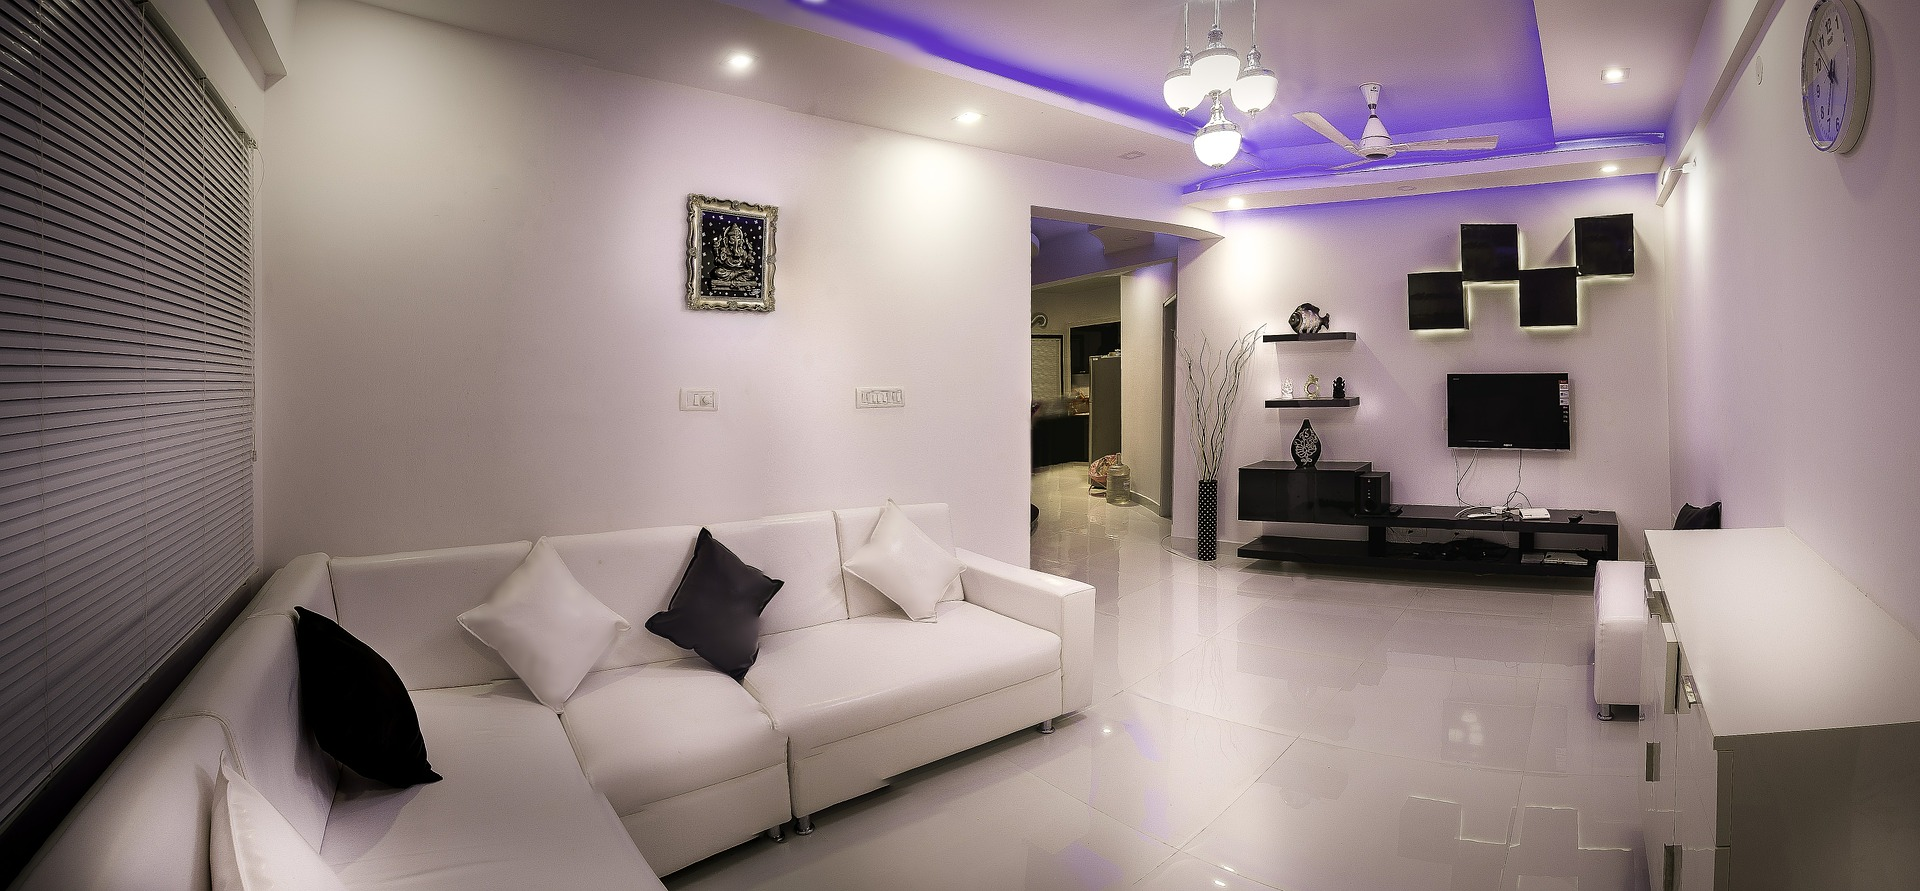 Home Design Around Lighting